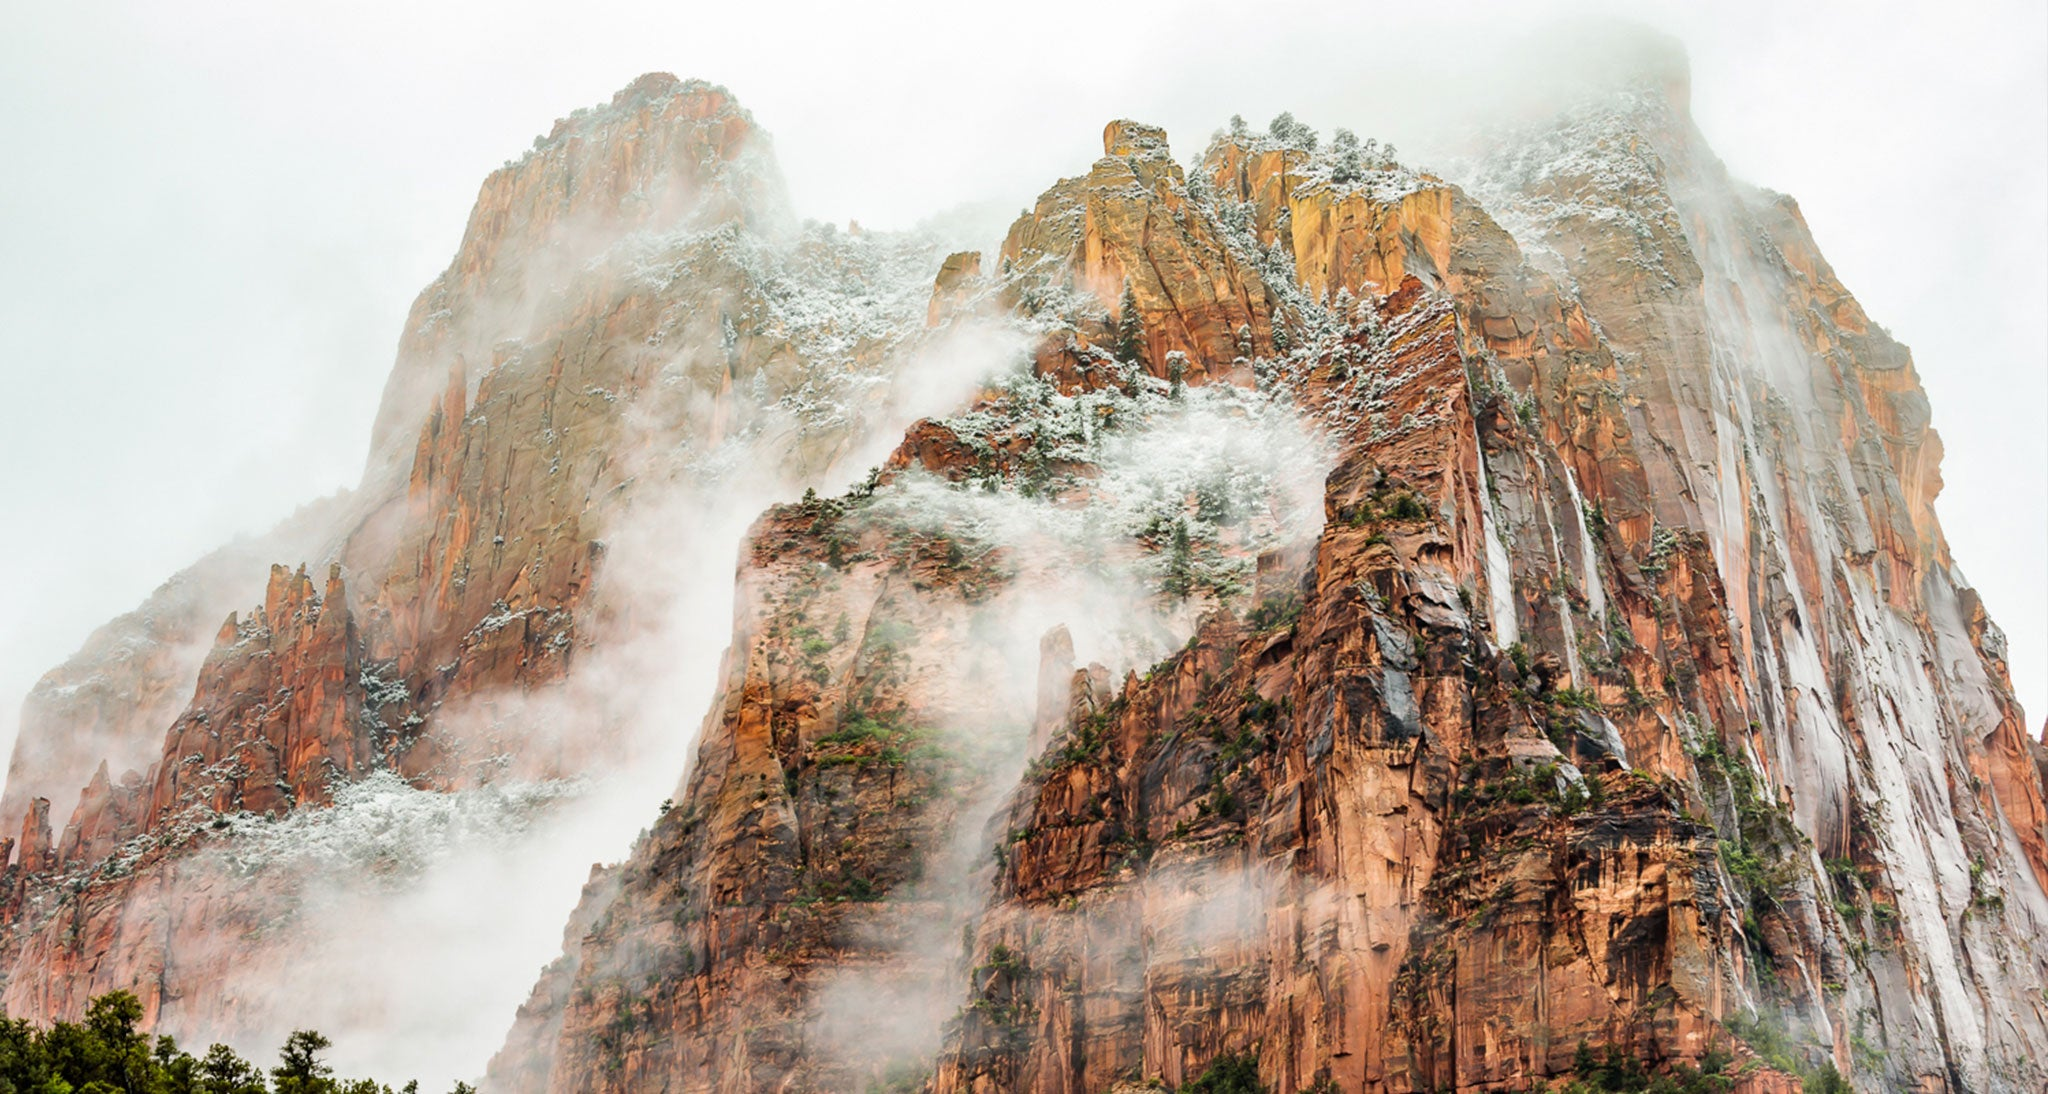 The featureless base of nimbostratus over Zion National Park in late May that resulted in an all night and near all day steady rain.  The ragged stratus clouds hugging the canyon walls are the result of evaporative cooling with air in contact with the canyon walls reaching saturation.  It is very common in lower latitudes such as southern Utah and in late spring for a steady prolonged rain in a stable atmosphere to transition into an unstable rain shower and cumulus cloud scenario caused by strong sun heating.